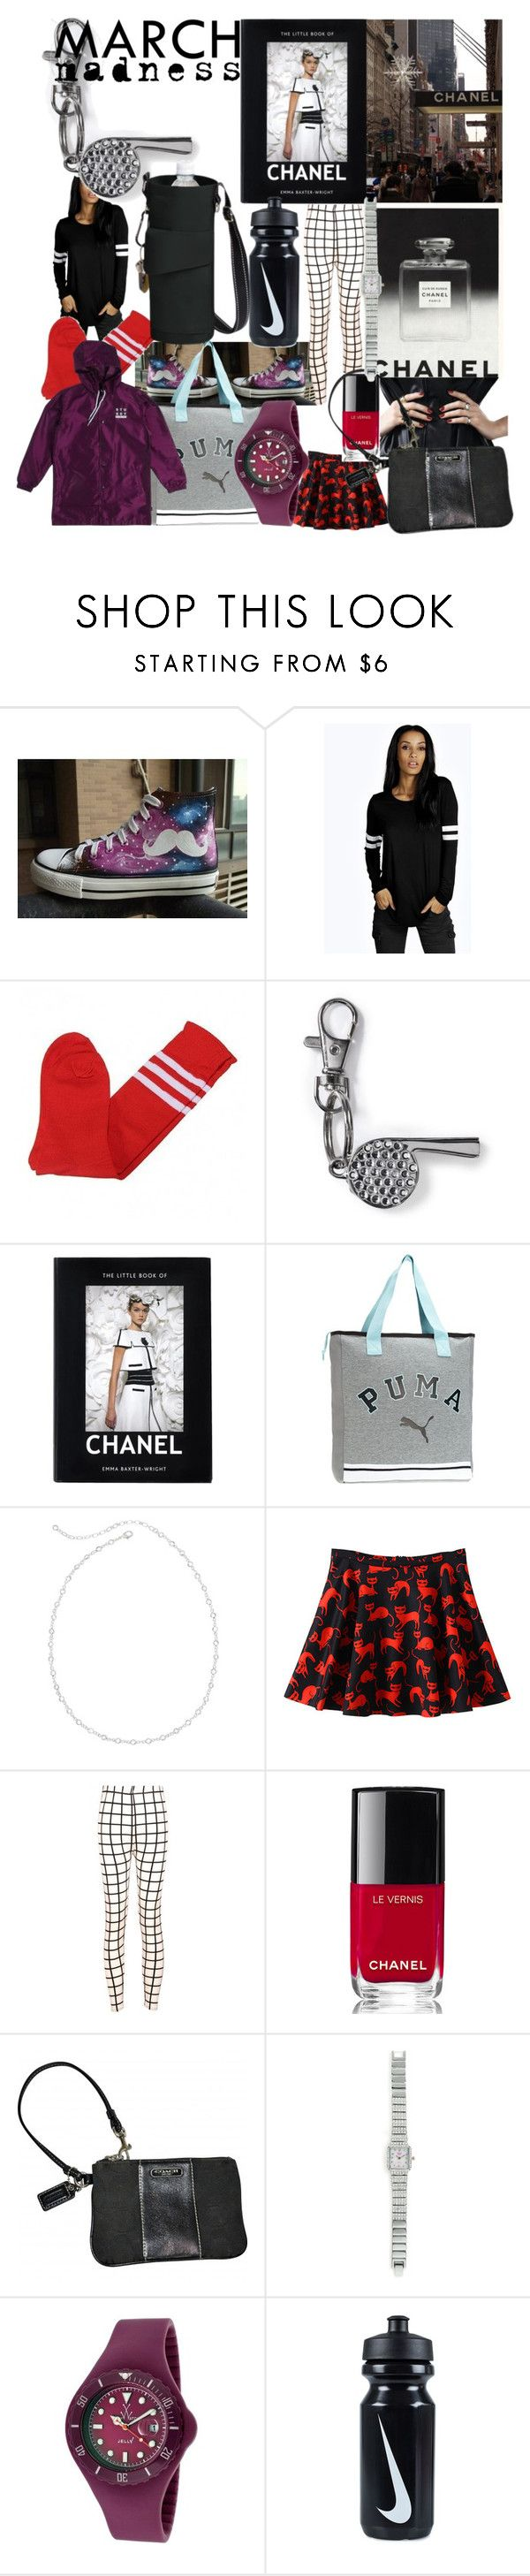 """""""Coach, Chanel, Court!!"""" by lerp ❤ liked on Polyvore featuring HVBAO, Boohoo, Chanel, Puma, Vieste Rosa, Coach, JustFab, Toy Watch and NIKE"""